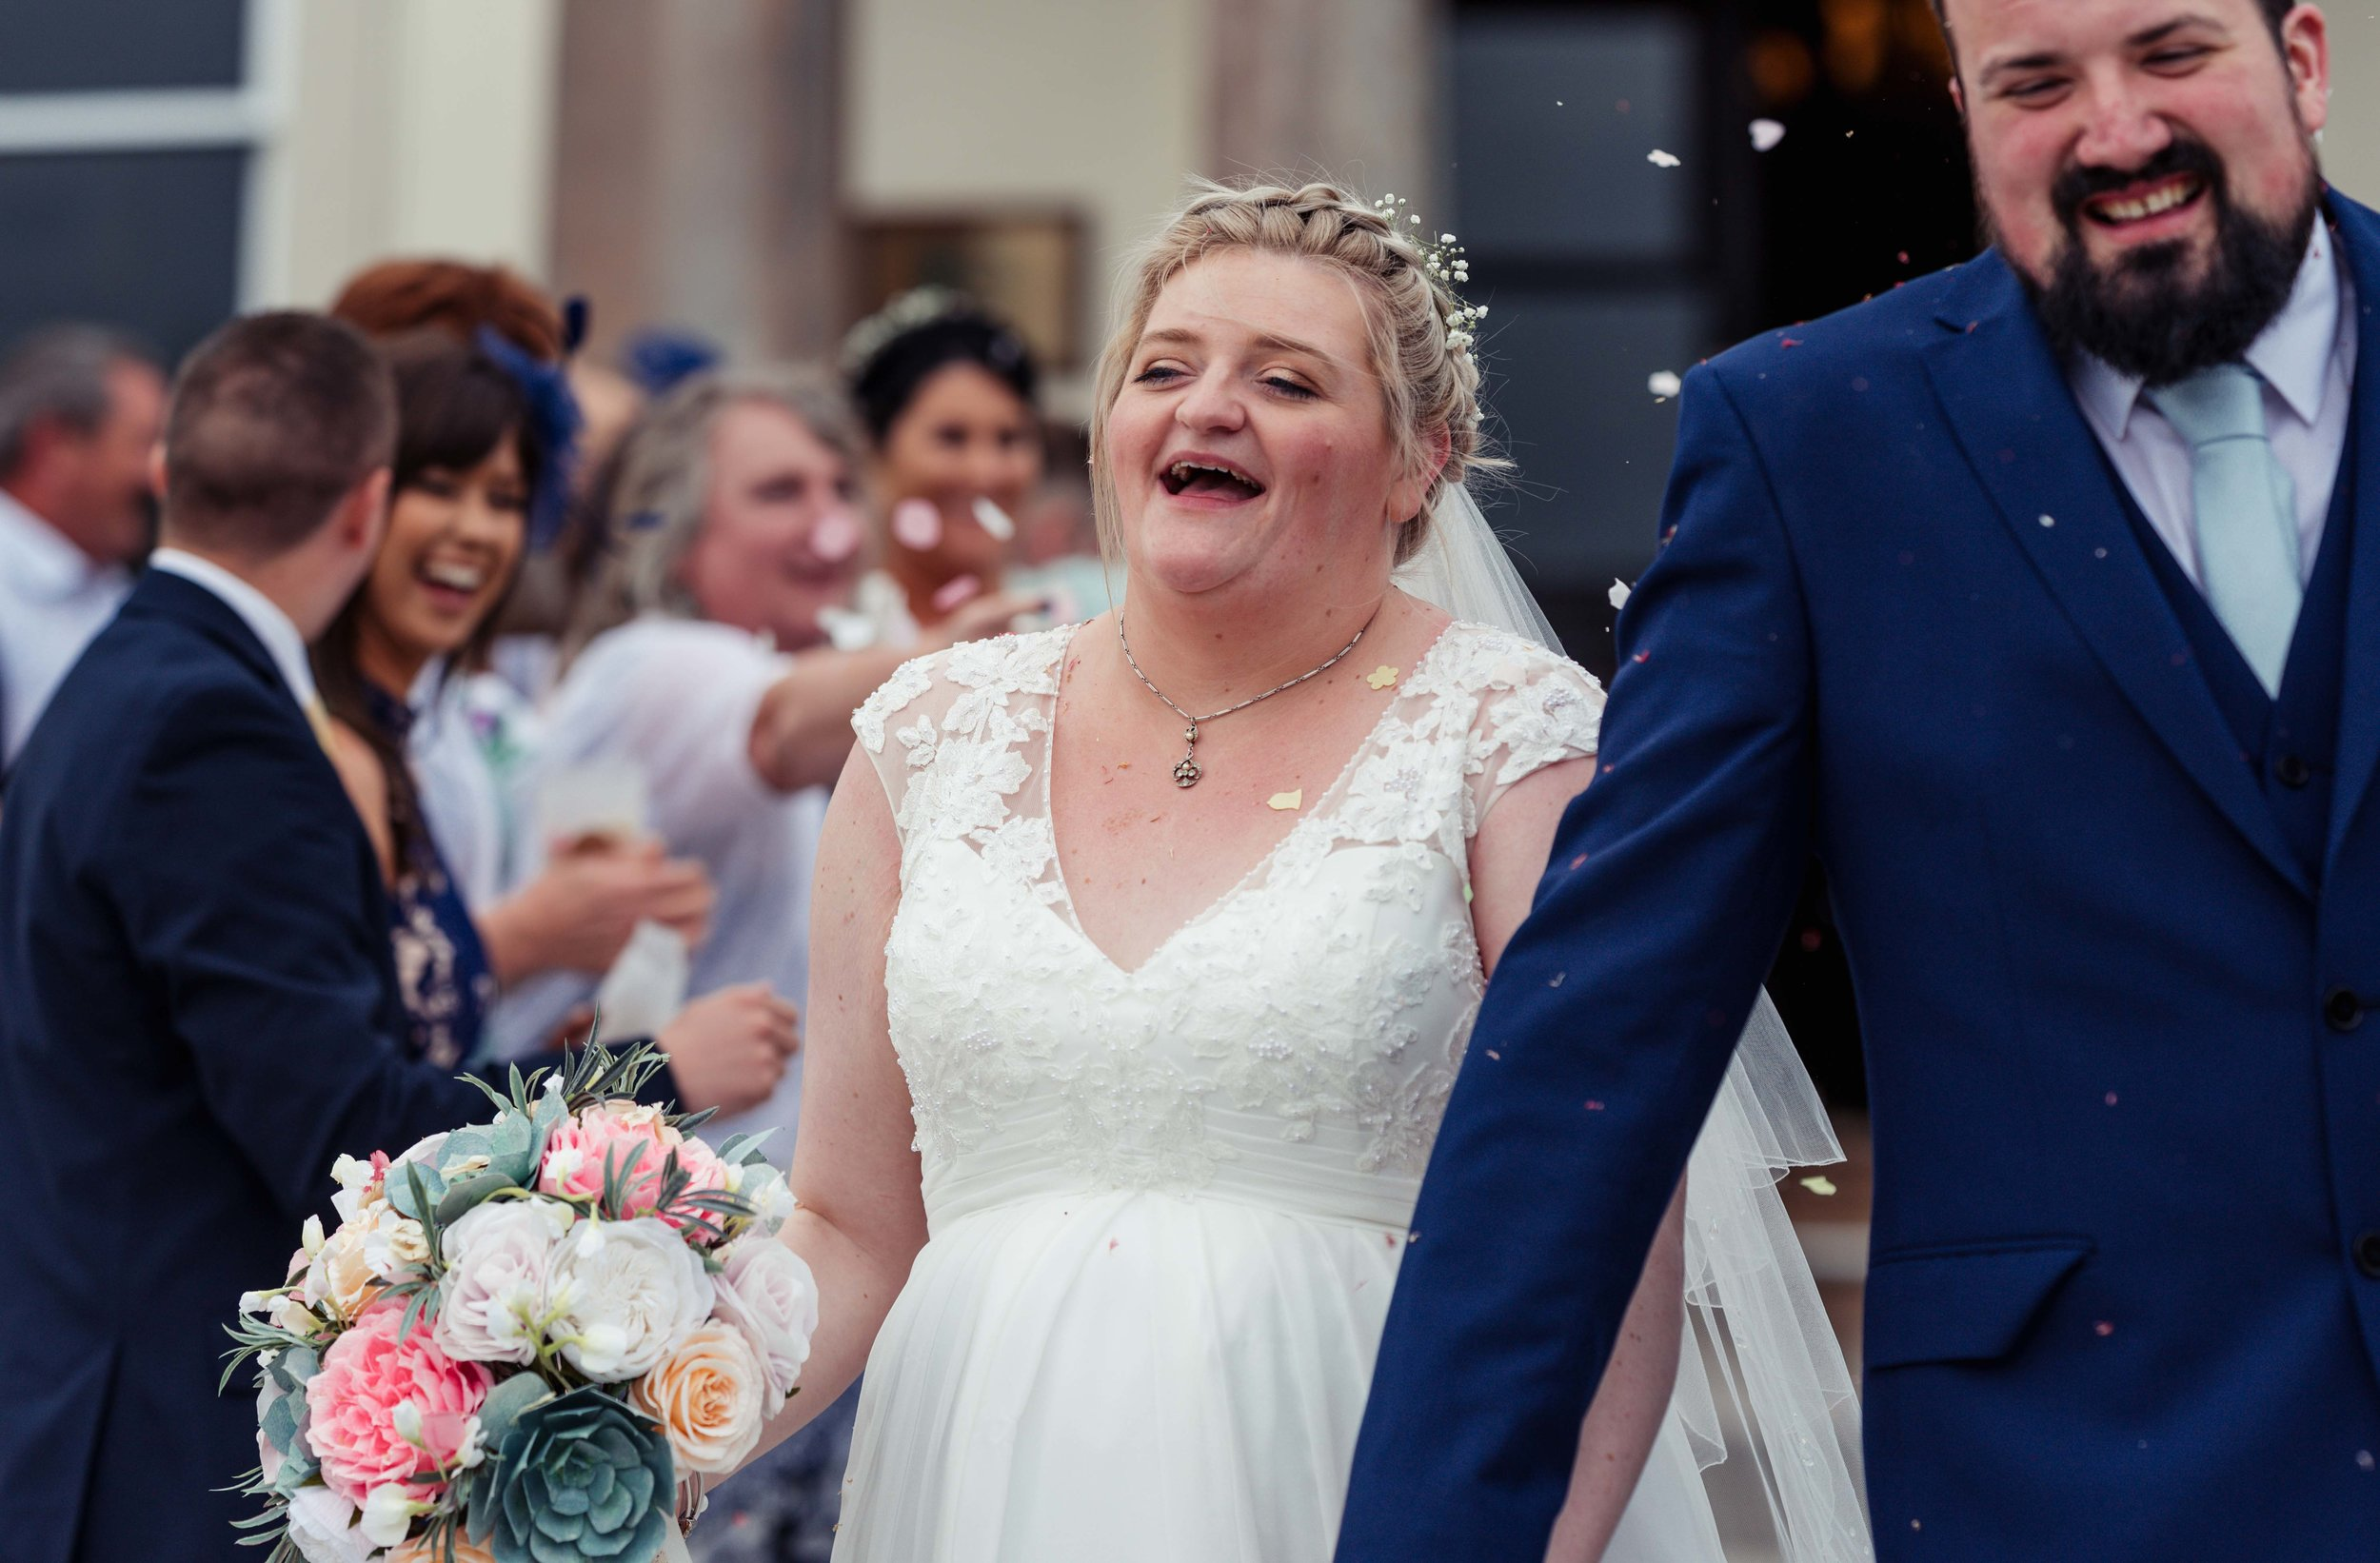 The bride at the end of their confetti photo, laughing her head off